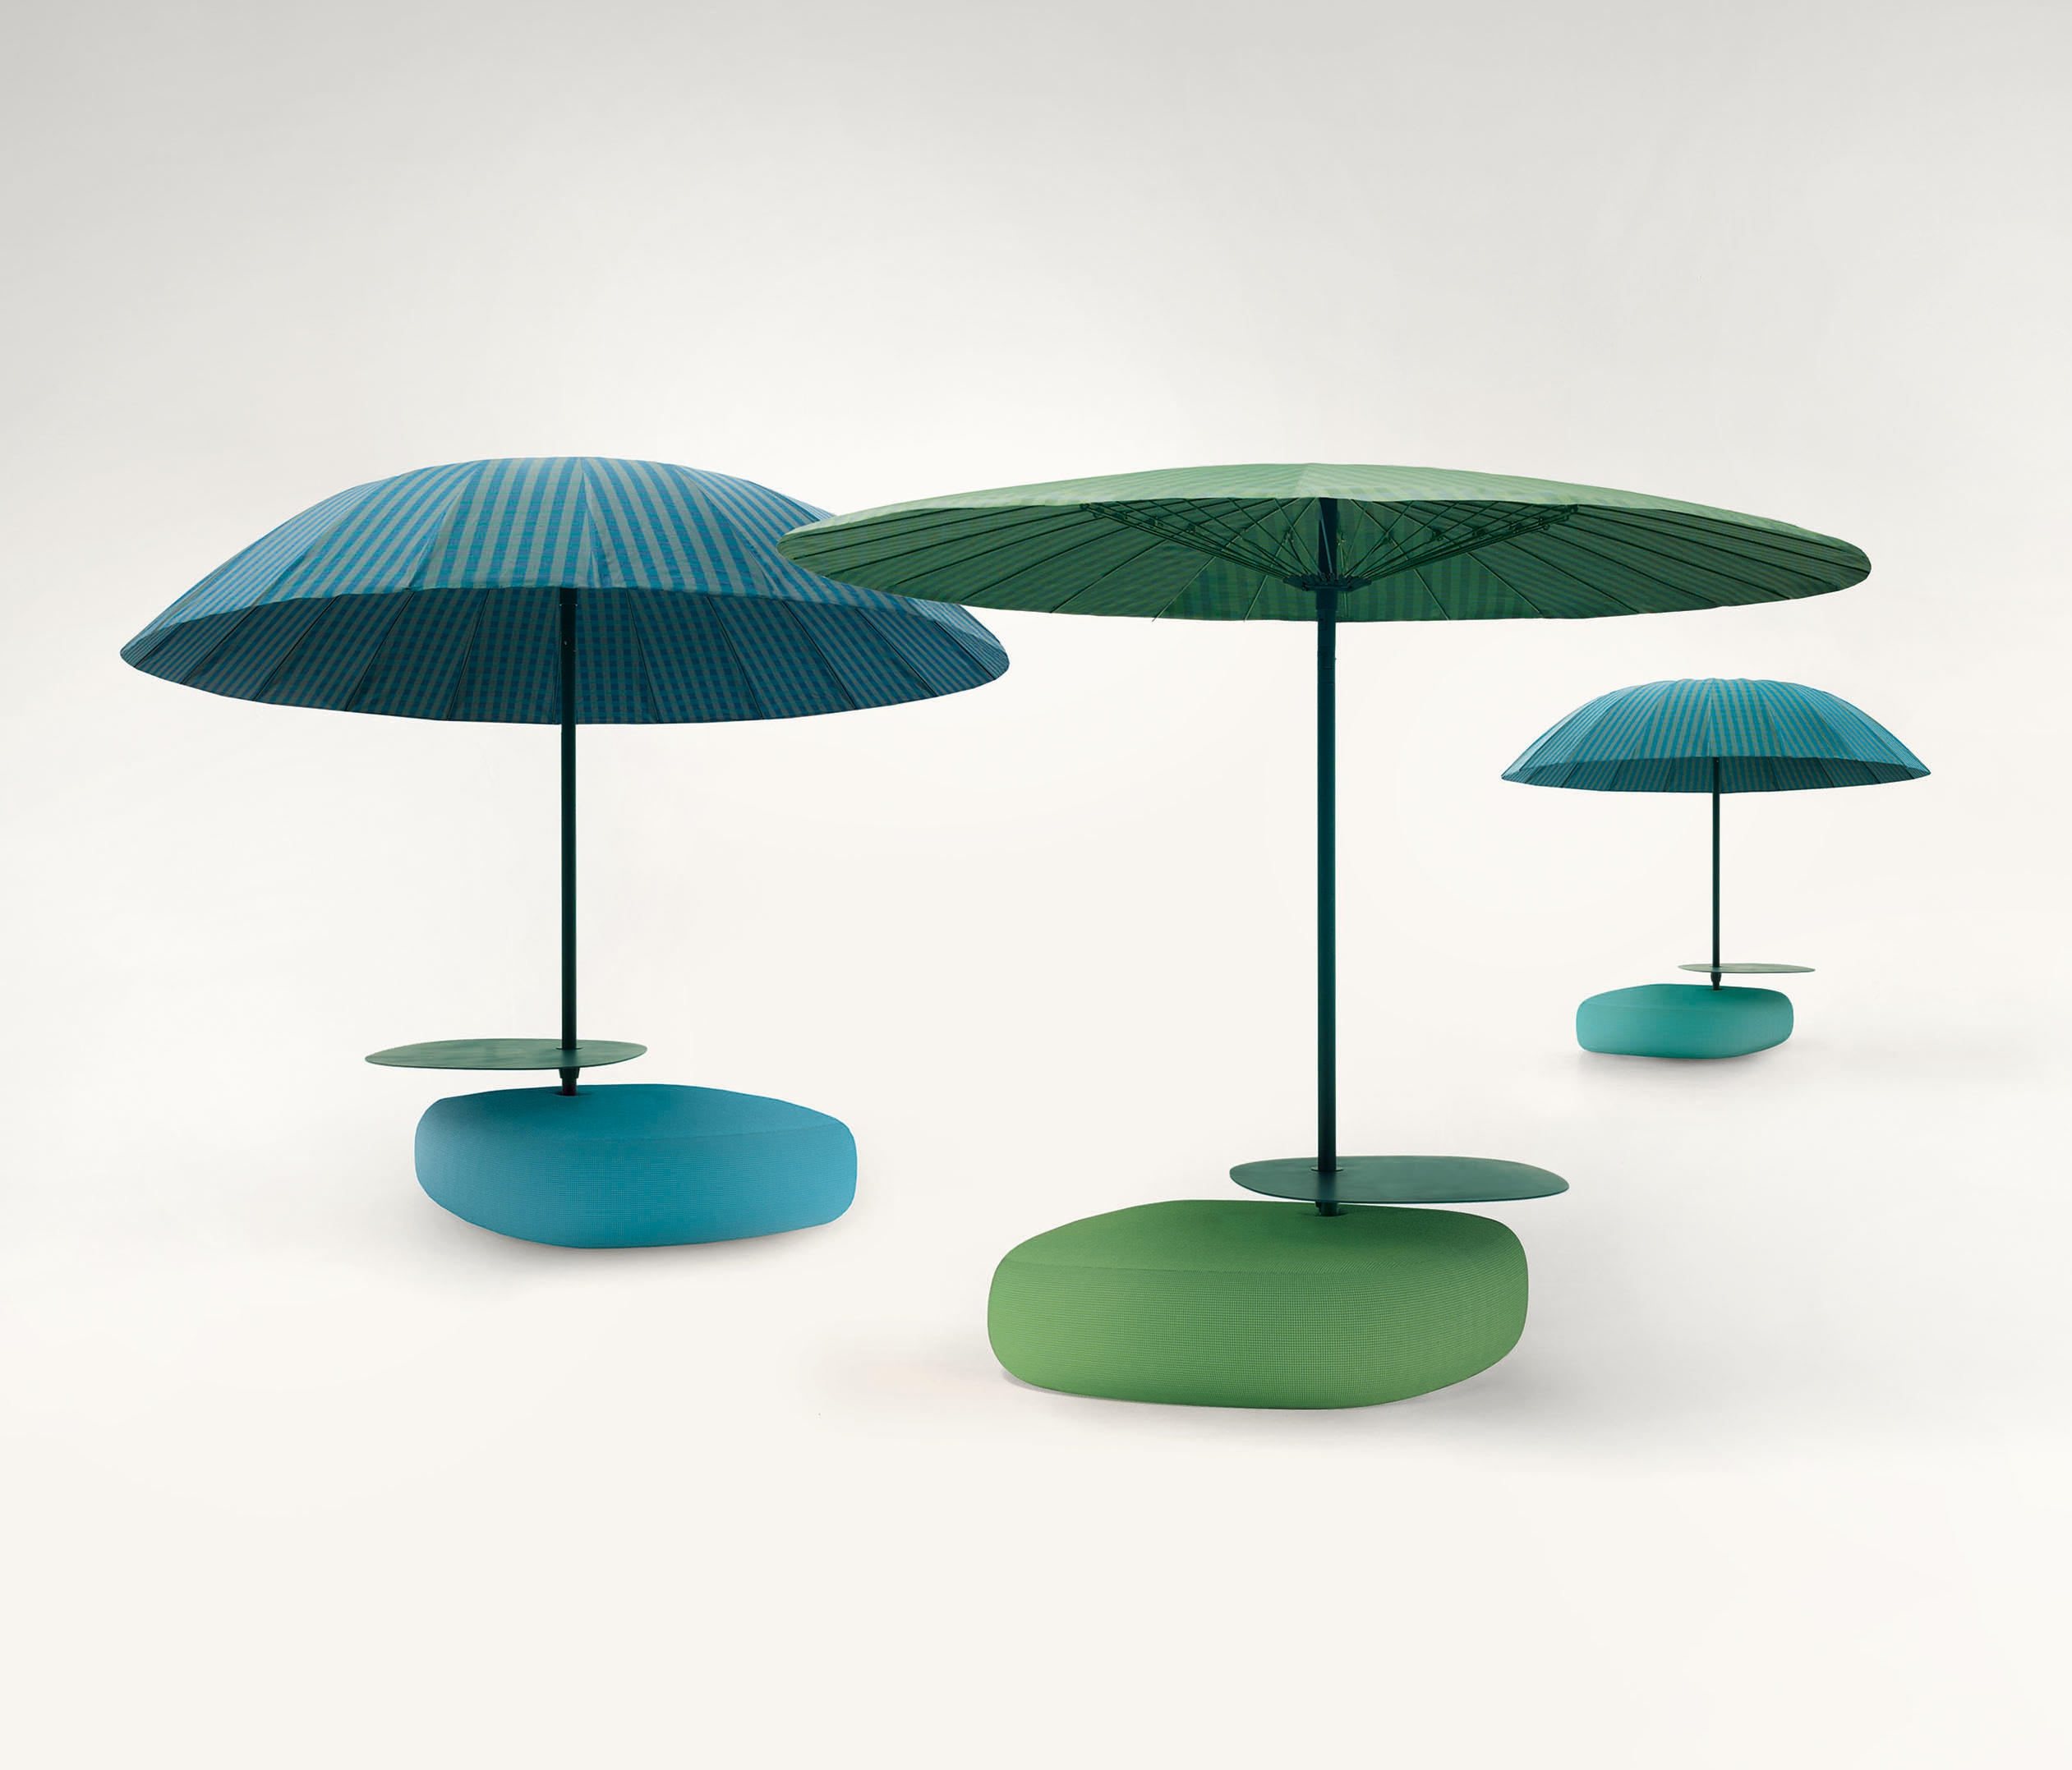 bistr parasols from paola lenti architonic. Black Bedroom Furniture Sets. Home Design Ideas